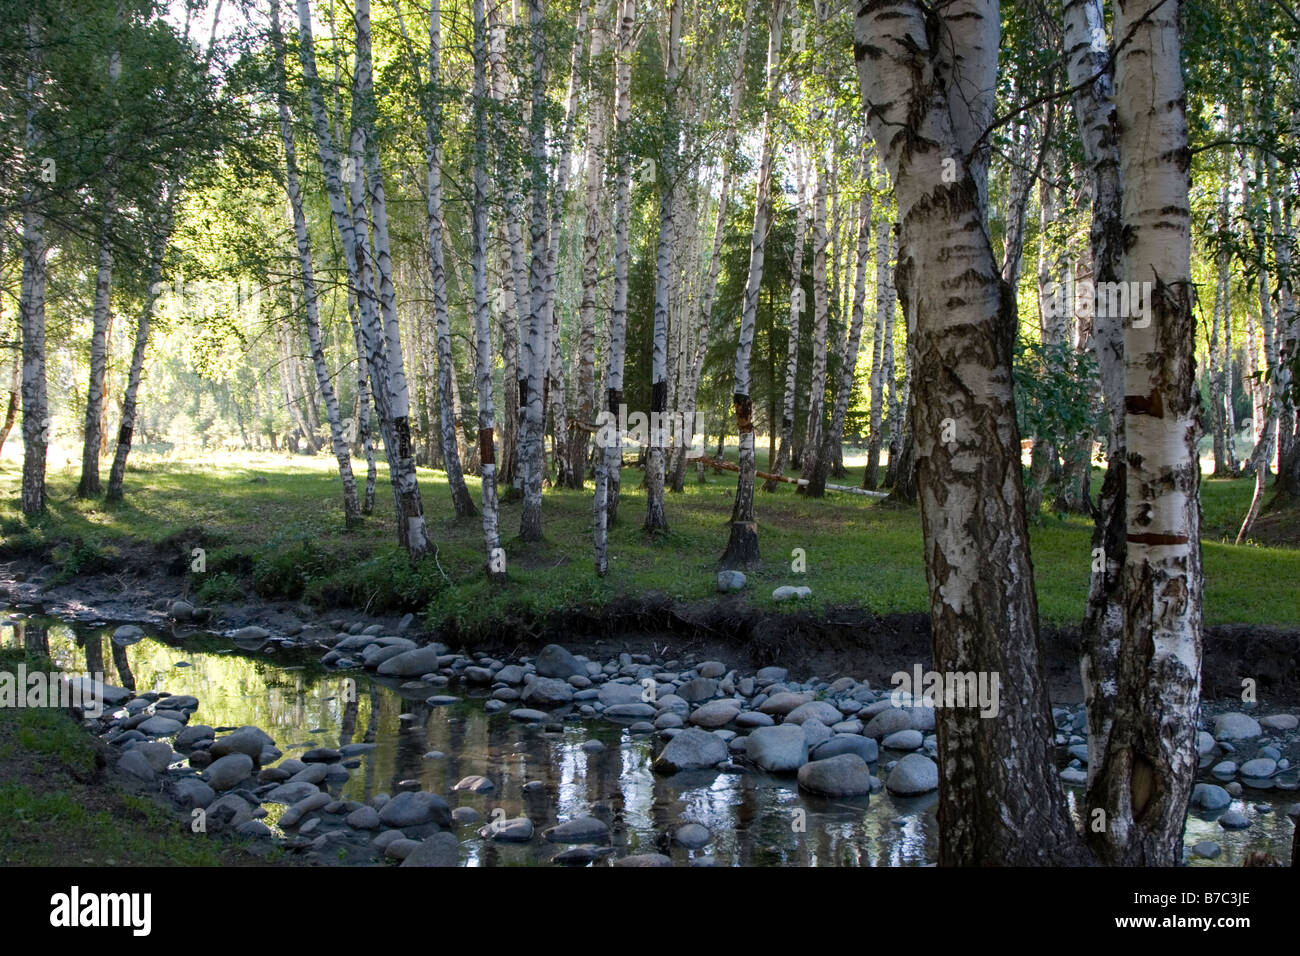 A grove of fir trees and a stream in Kanas in Xinjiang in China. - Stock Image